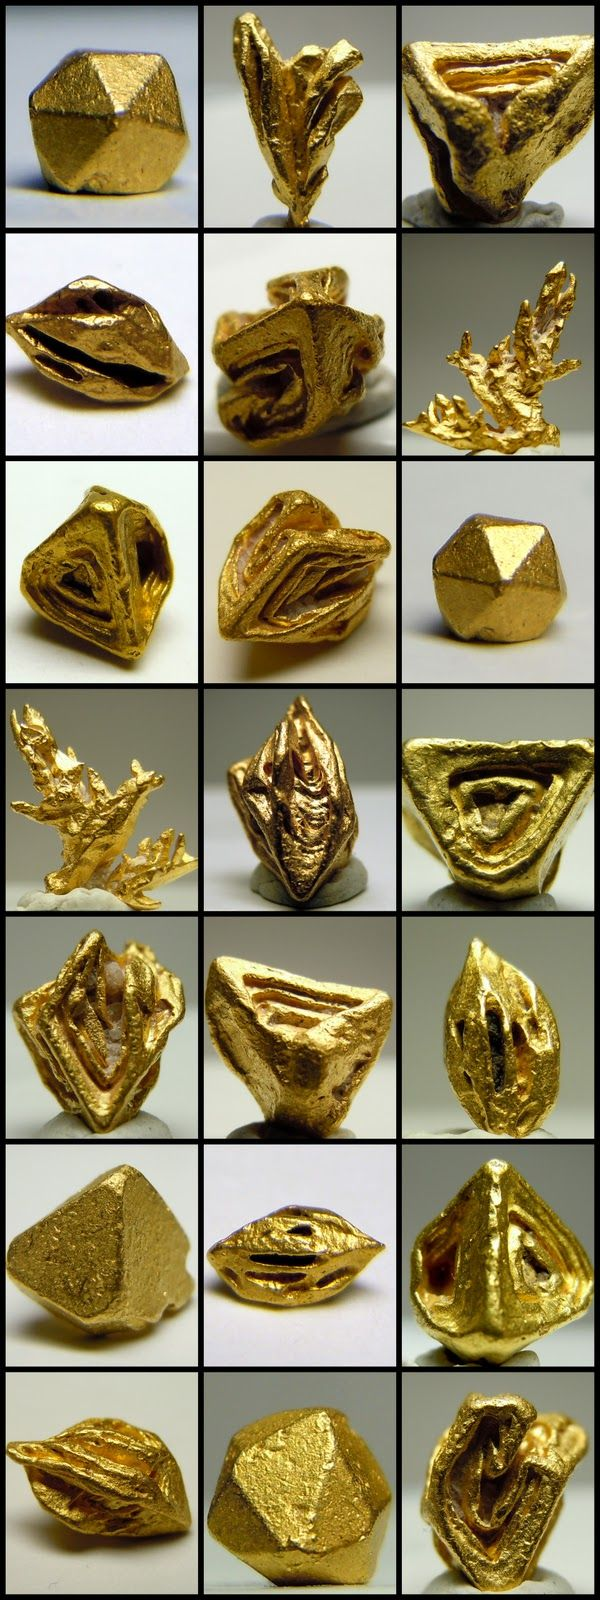 I think the beauty of gold speaks for itself. I wish there were a lot more of it on Earth. --Pia (Natural crystal forms of Gold)